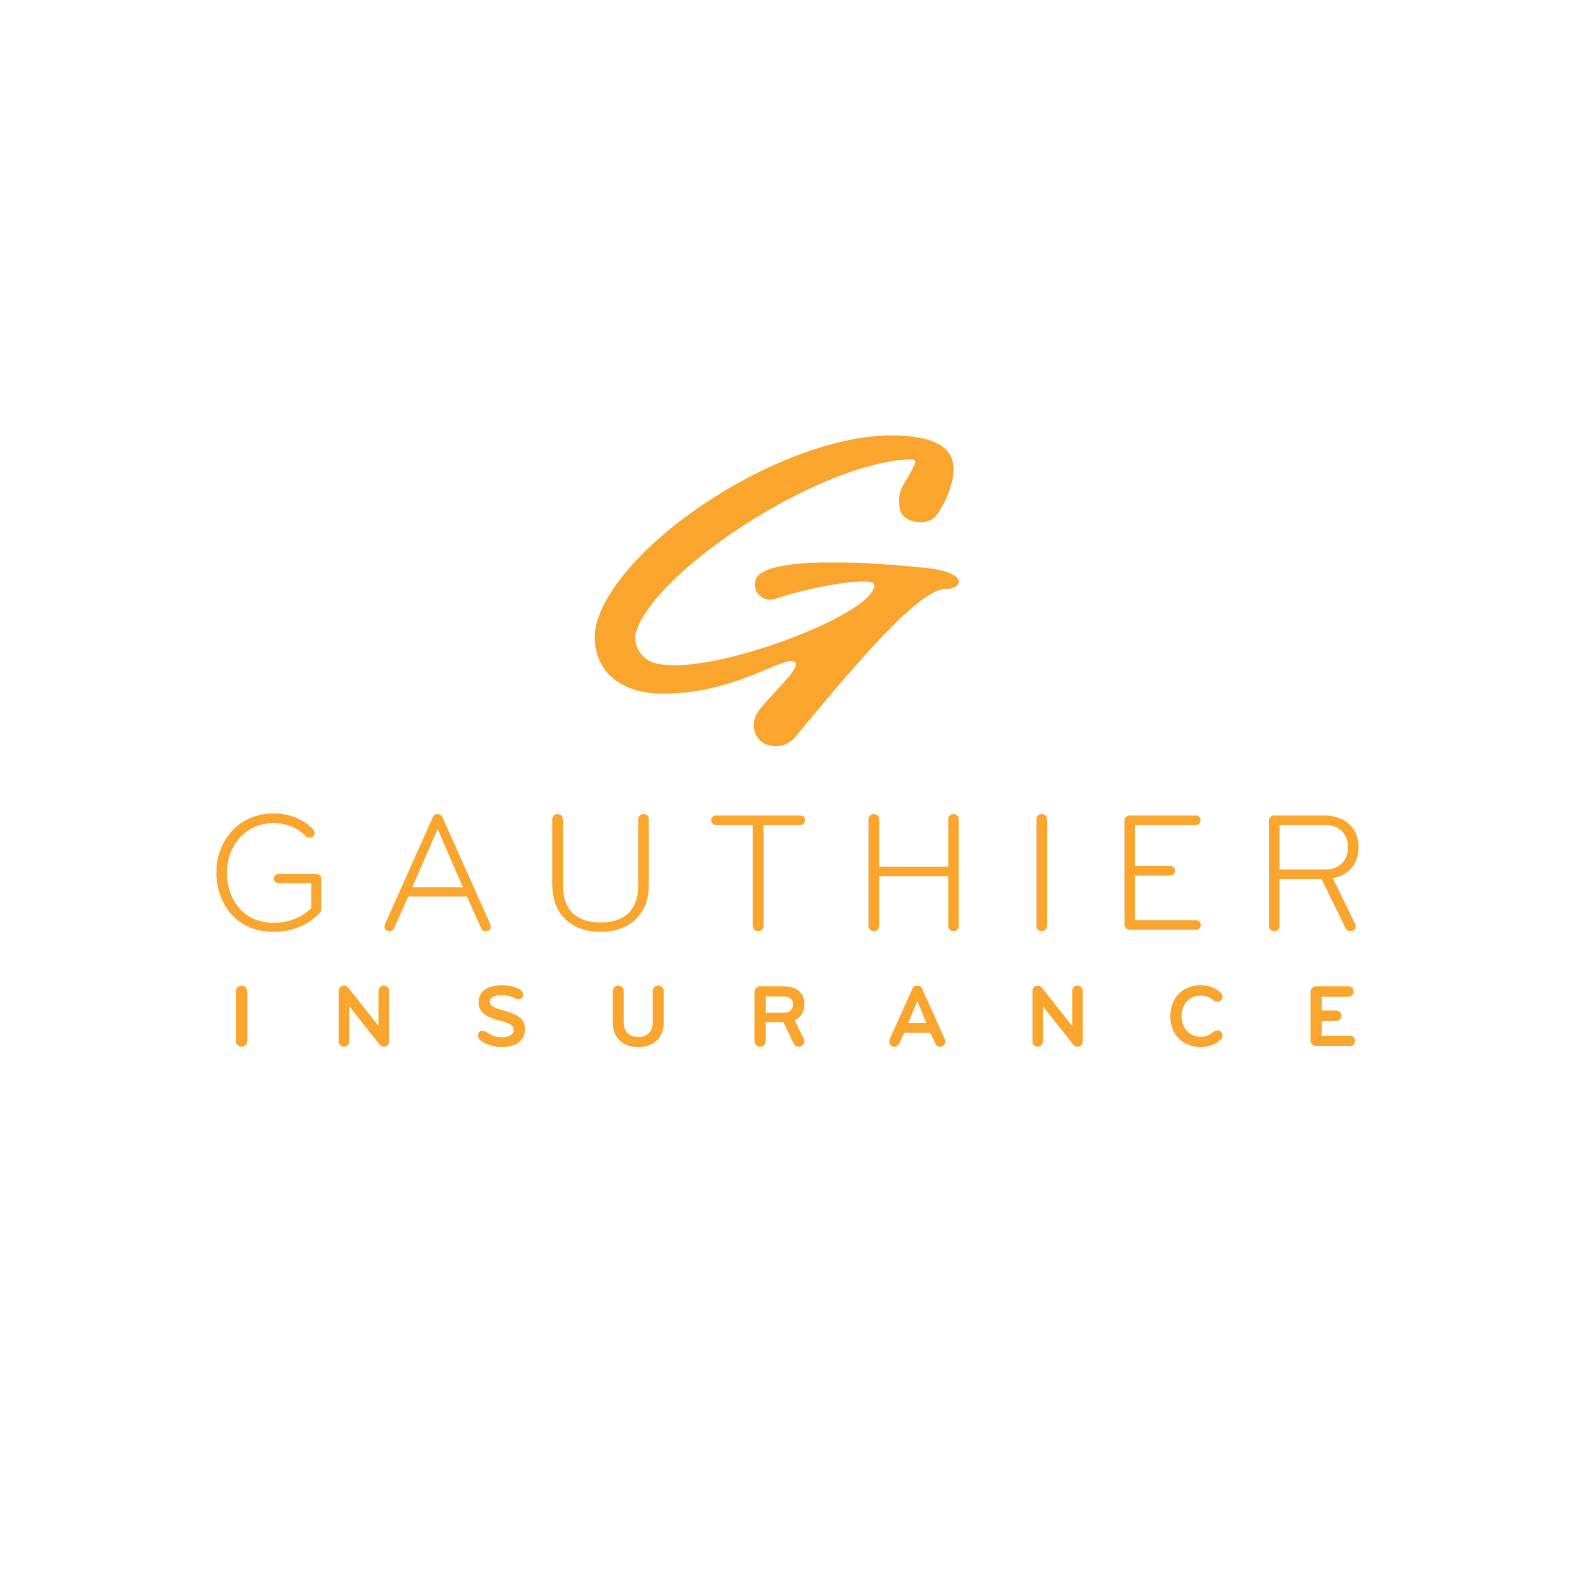 Gauthier Insurance image 2